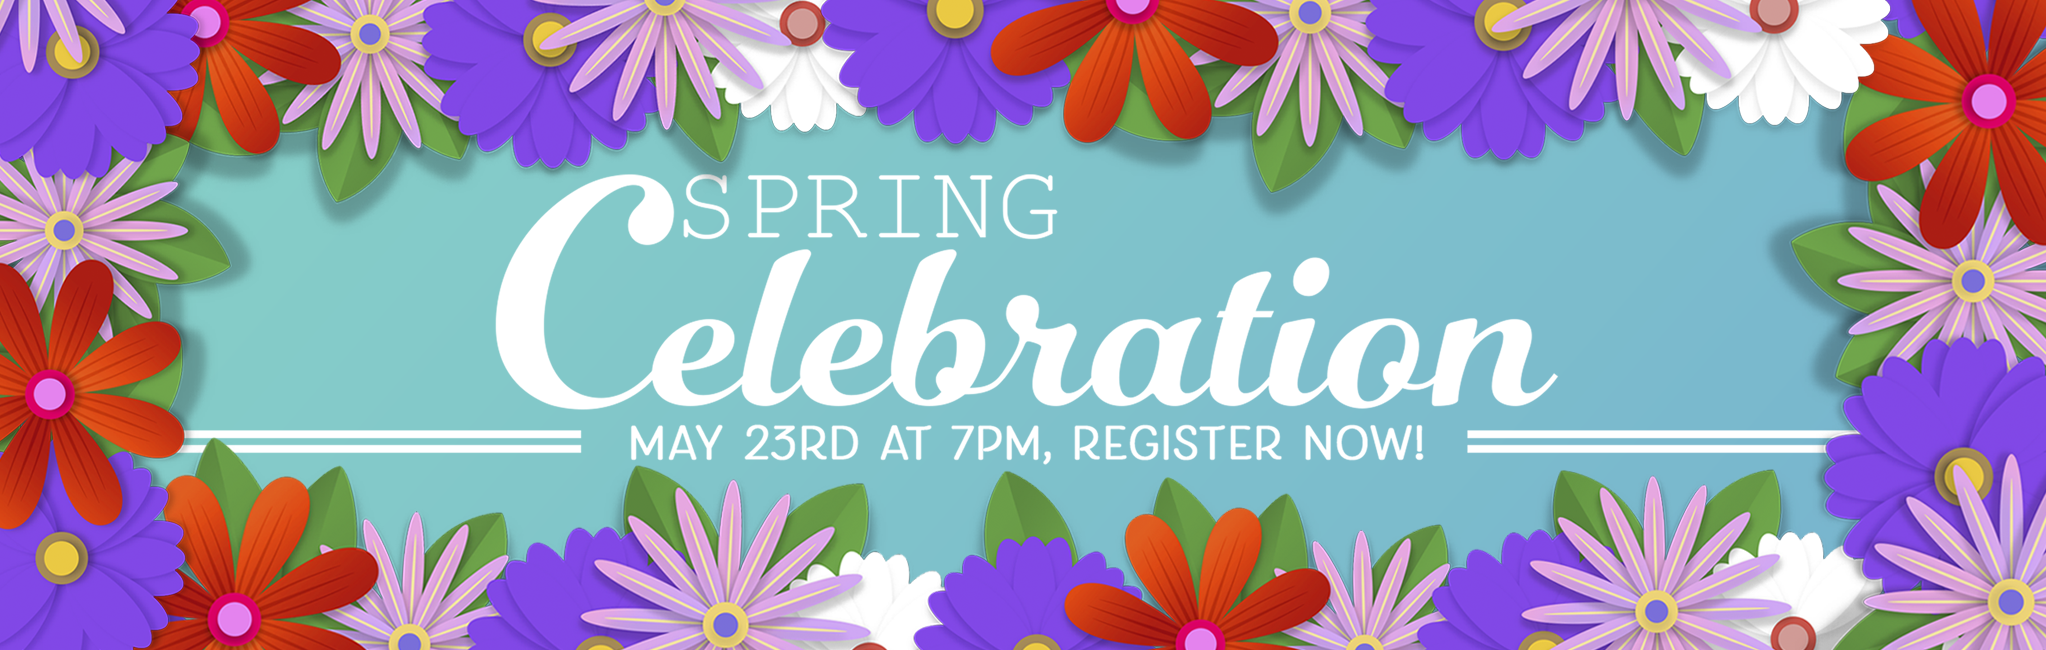 "<a href=""https://kolemeth.shulcloud.com/springcelebration2021""